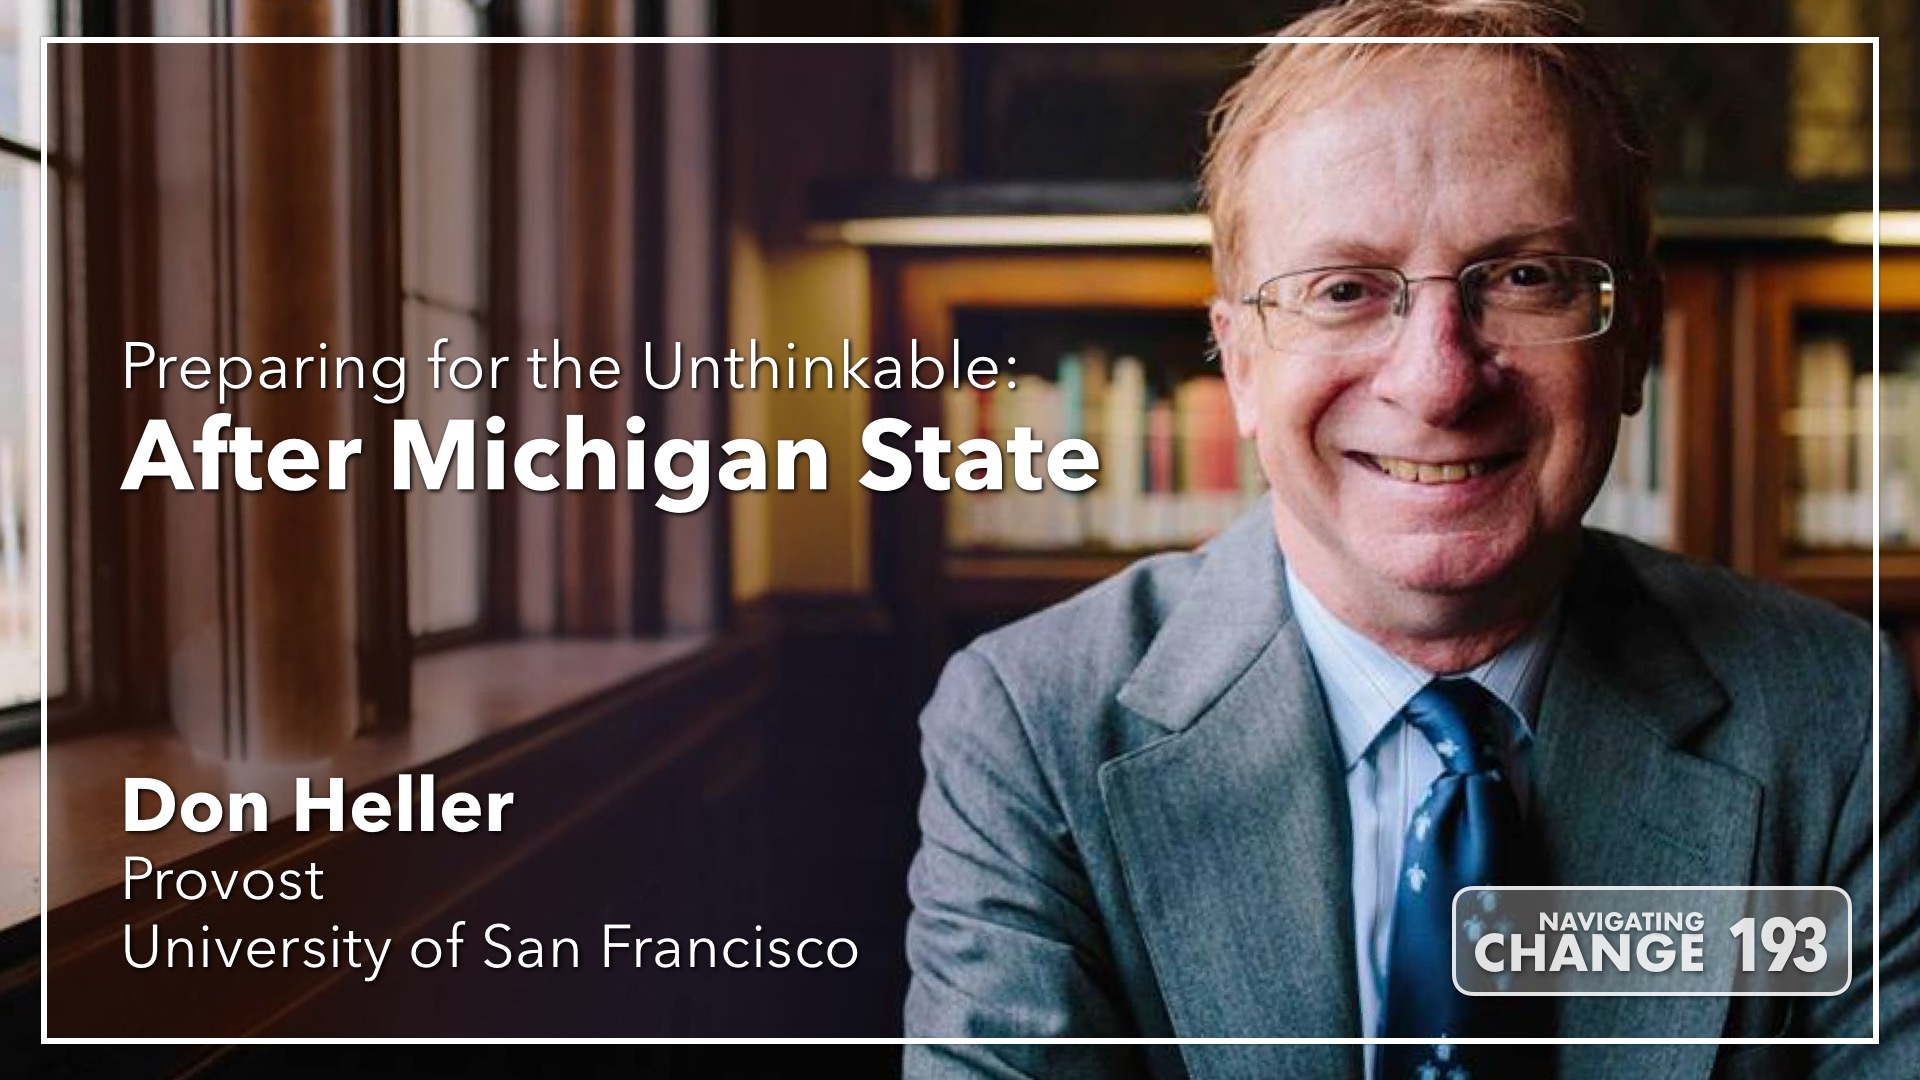 Listen to Dr. Don Heller on Navigating Change The Podcast from Teibel Education